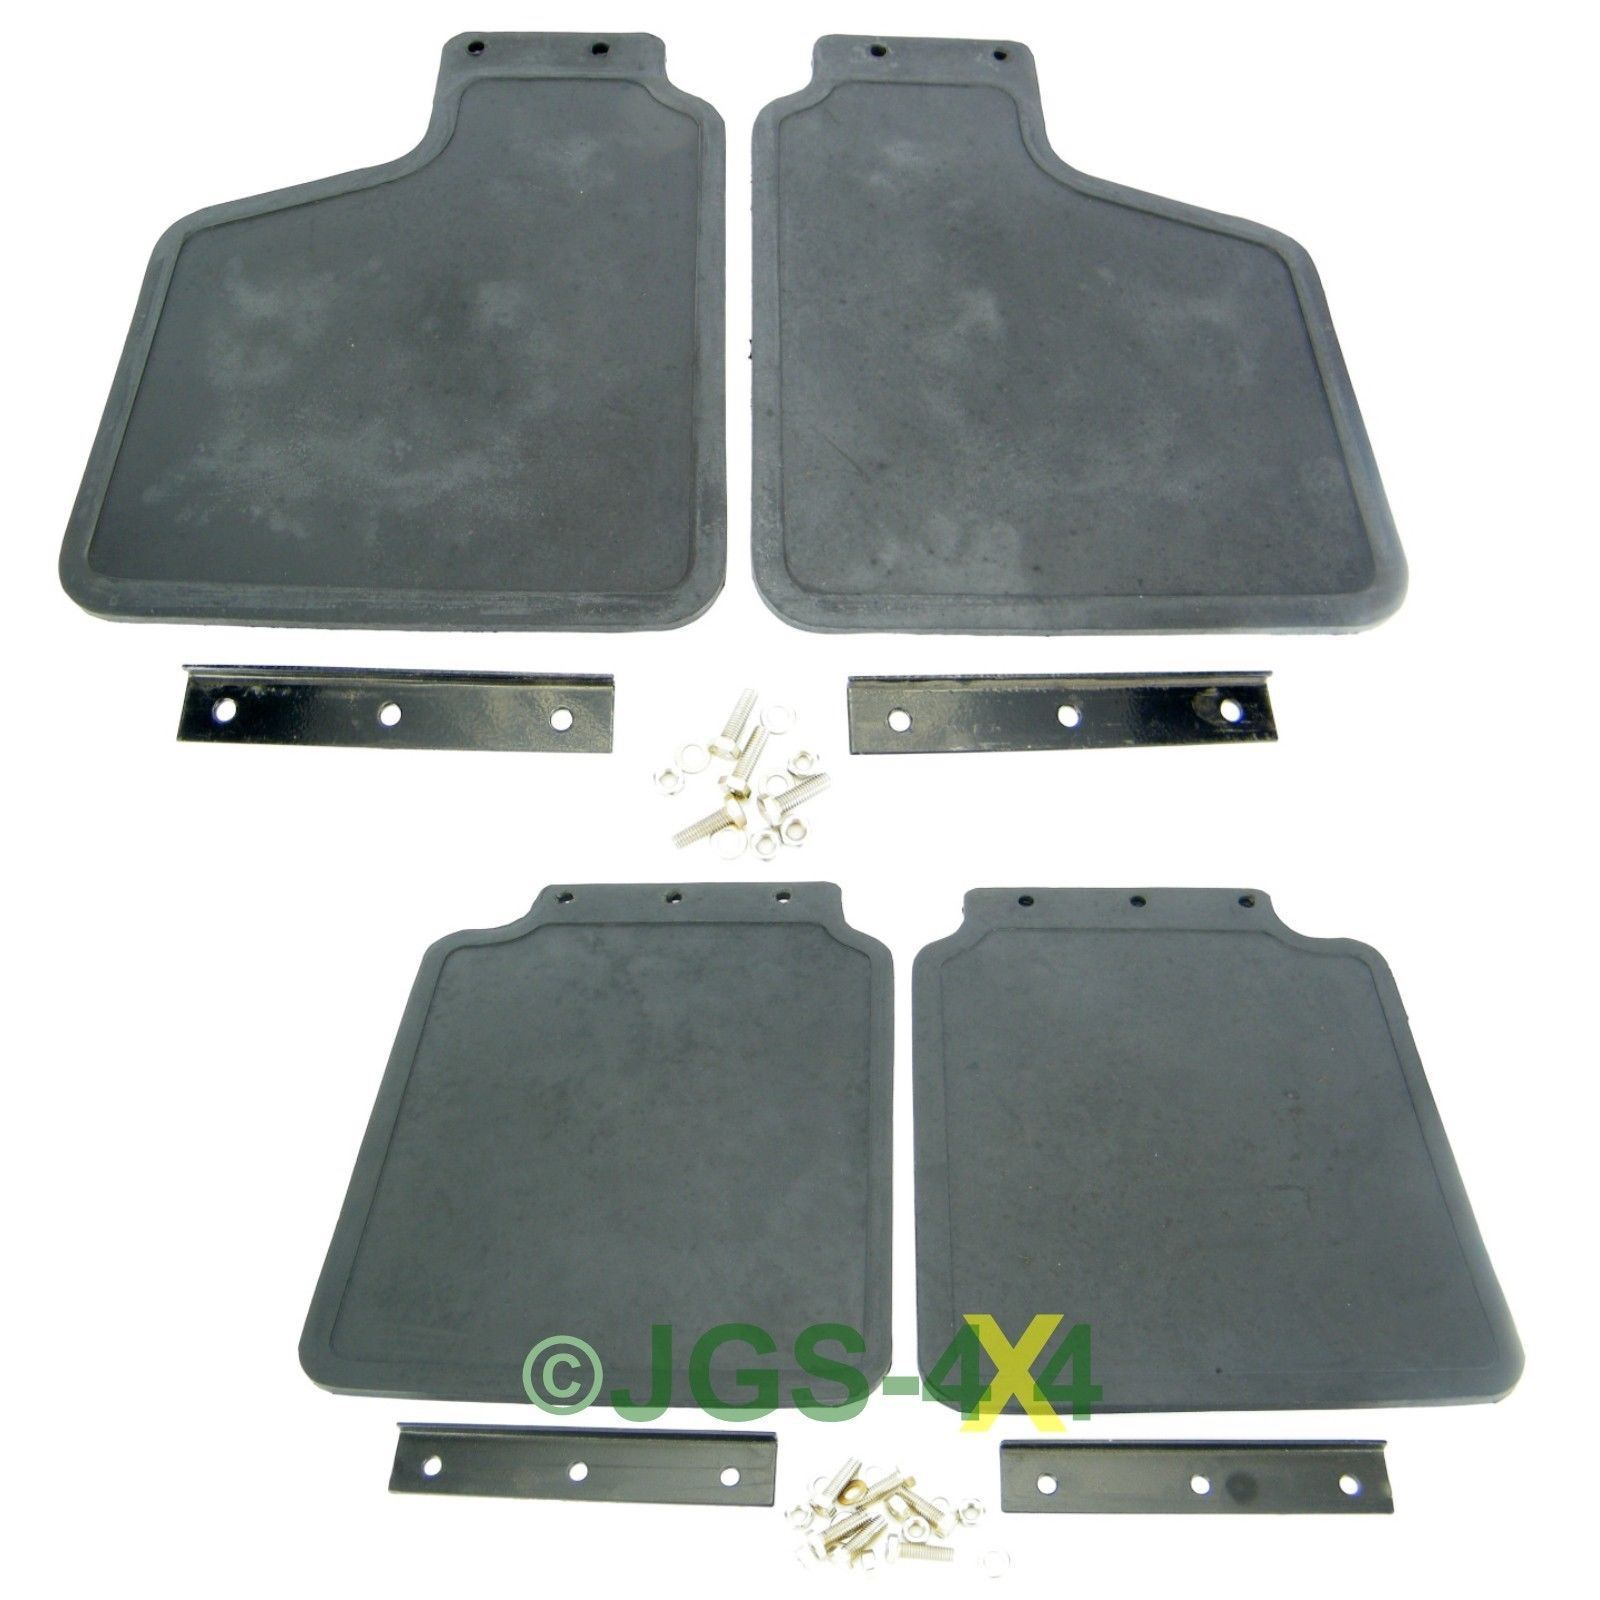 Land Rover Discovery 1 Mud Flap Kit Front Amp Rear Rtc6820